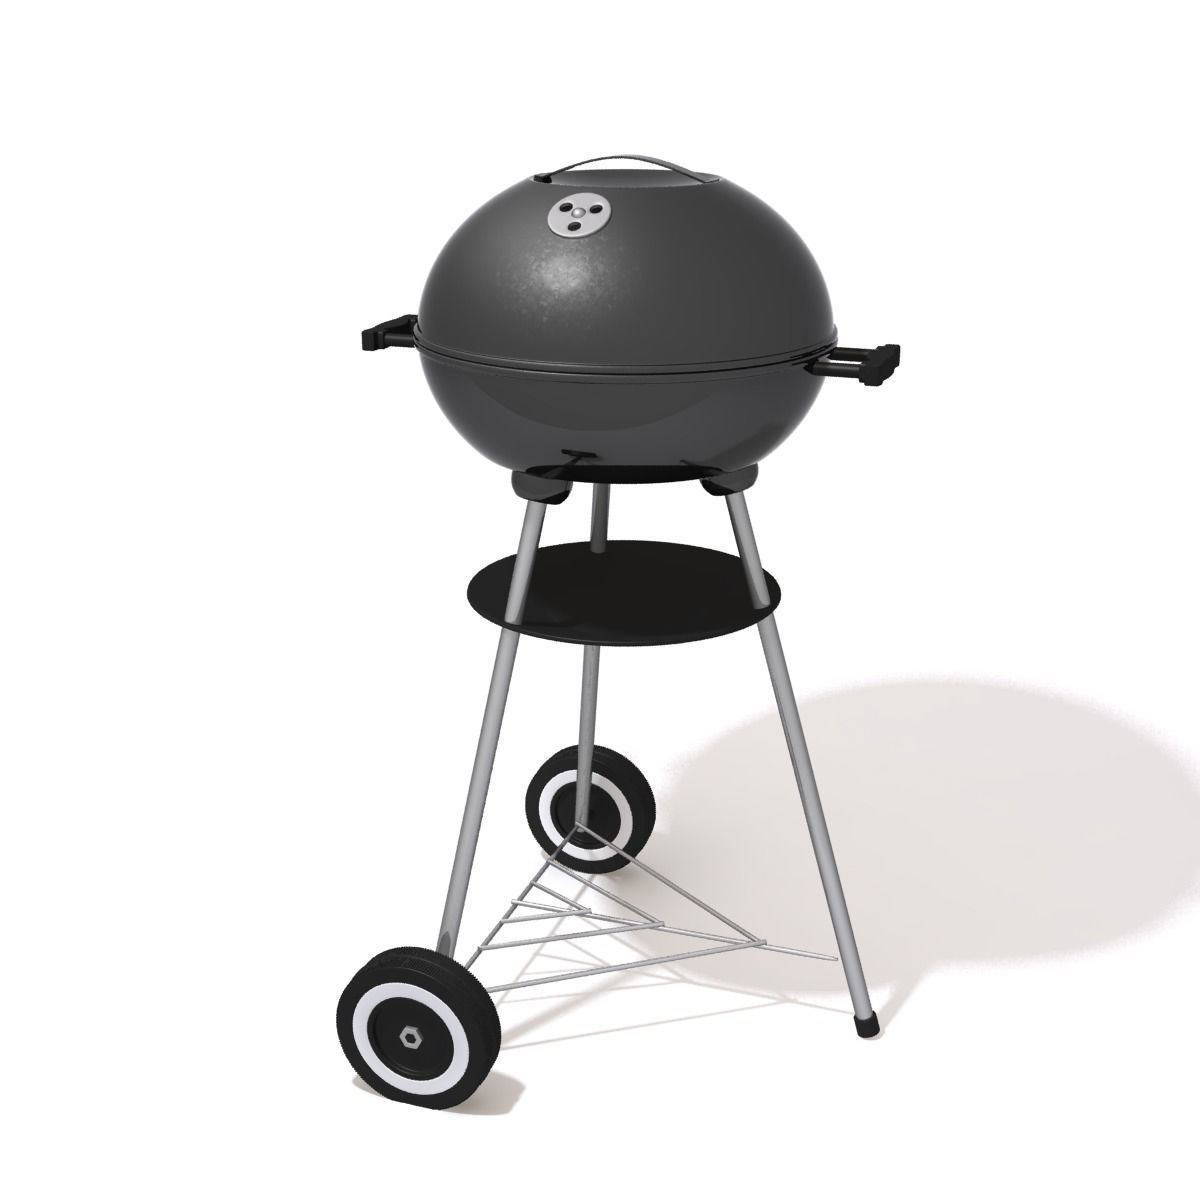 Barbecue Charcoal Grill